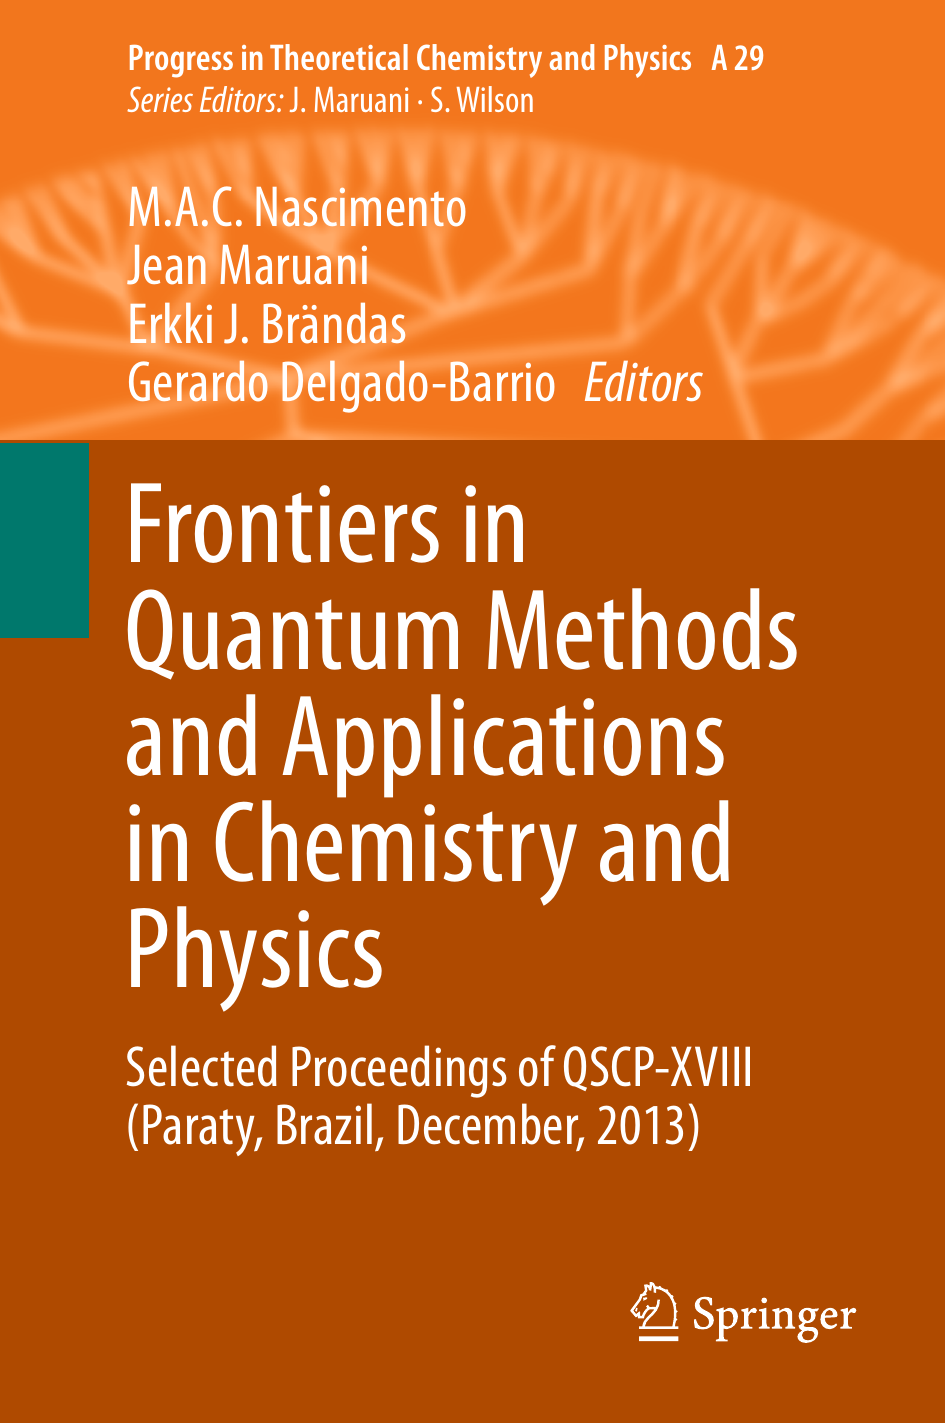 Frontiers in Quantum Methods and Applications in Chemistry and